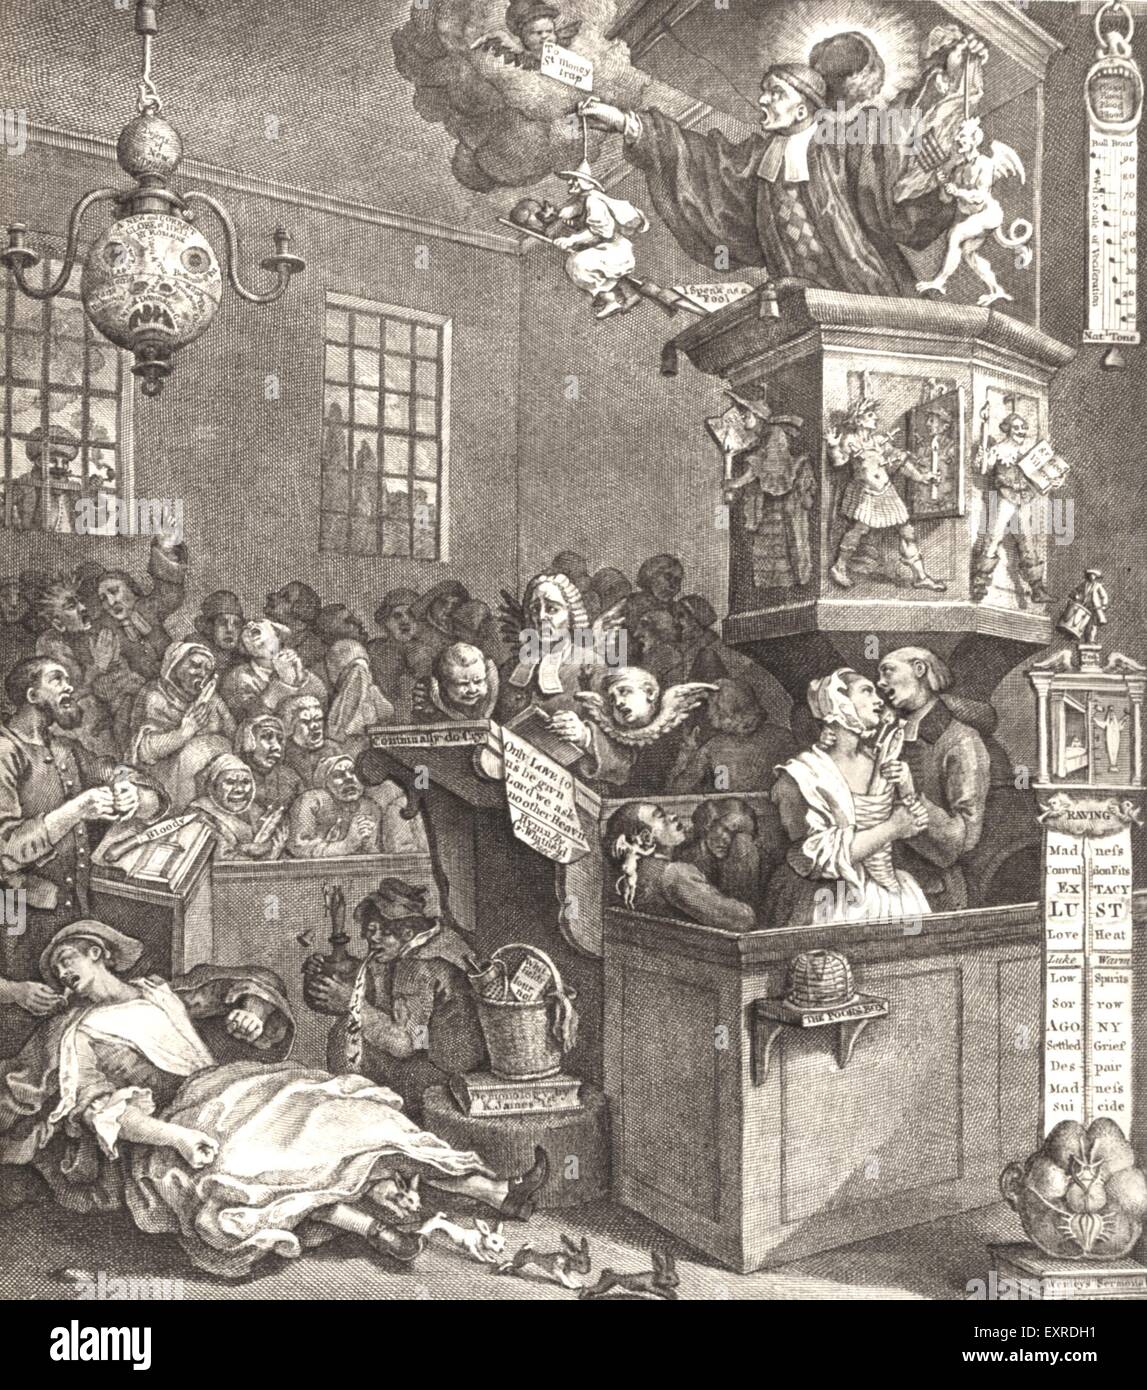 1840s & Pre UK Hogarth Courts Book Plate - Stock Image